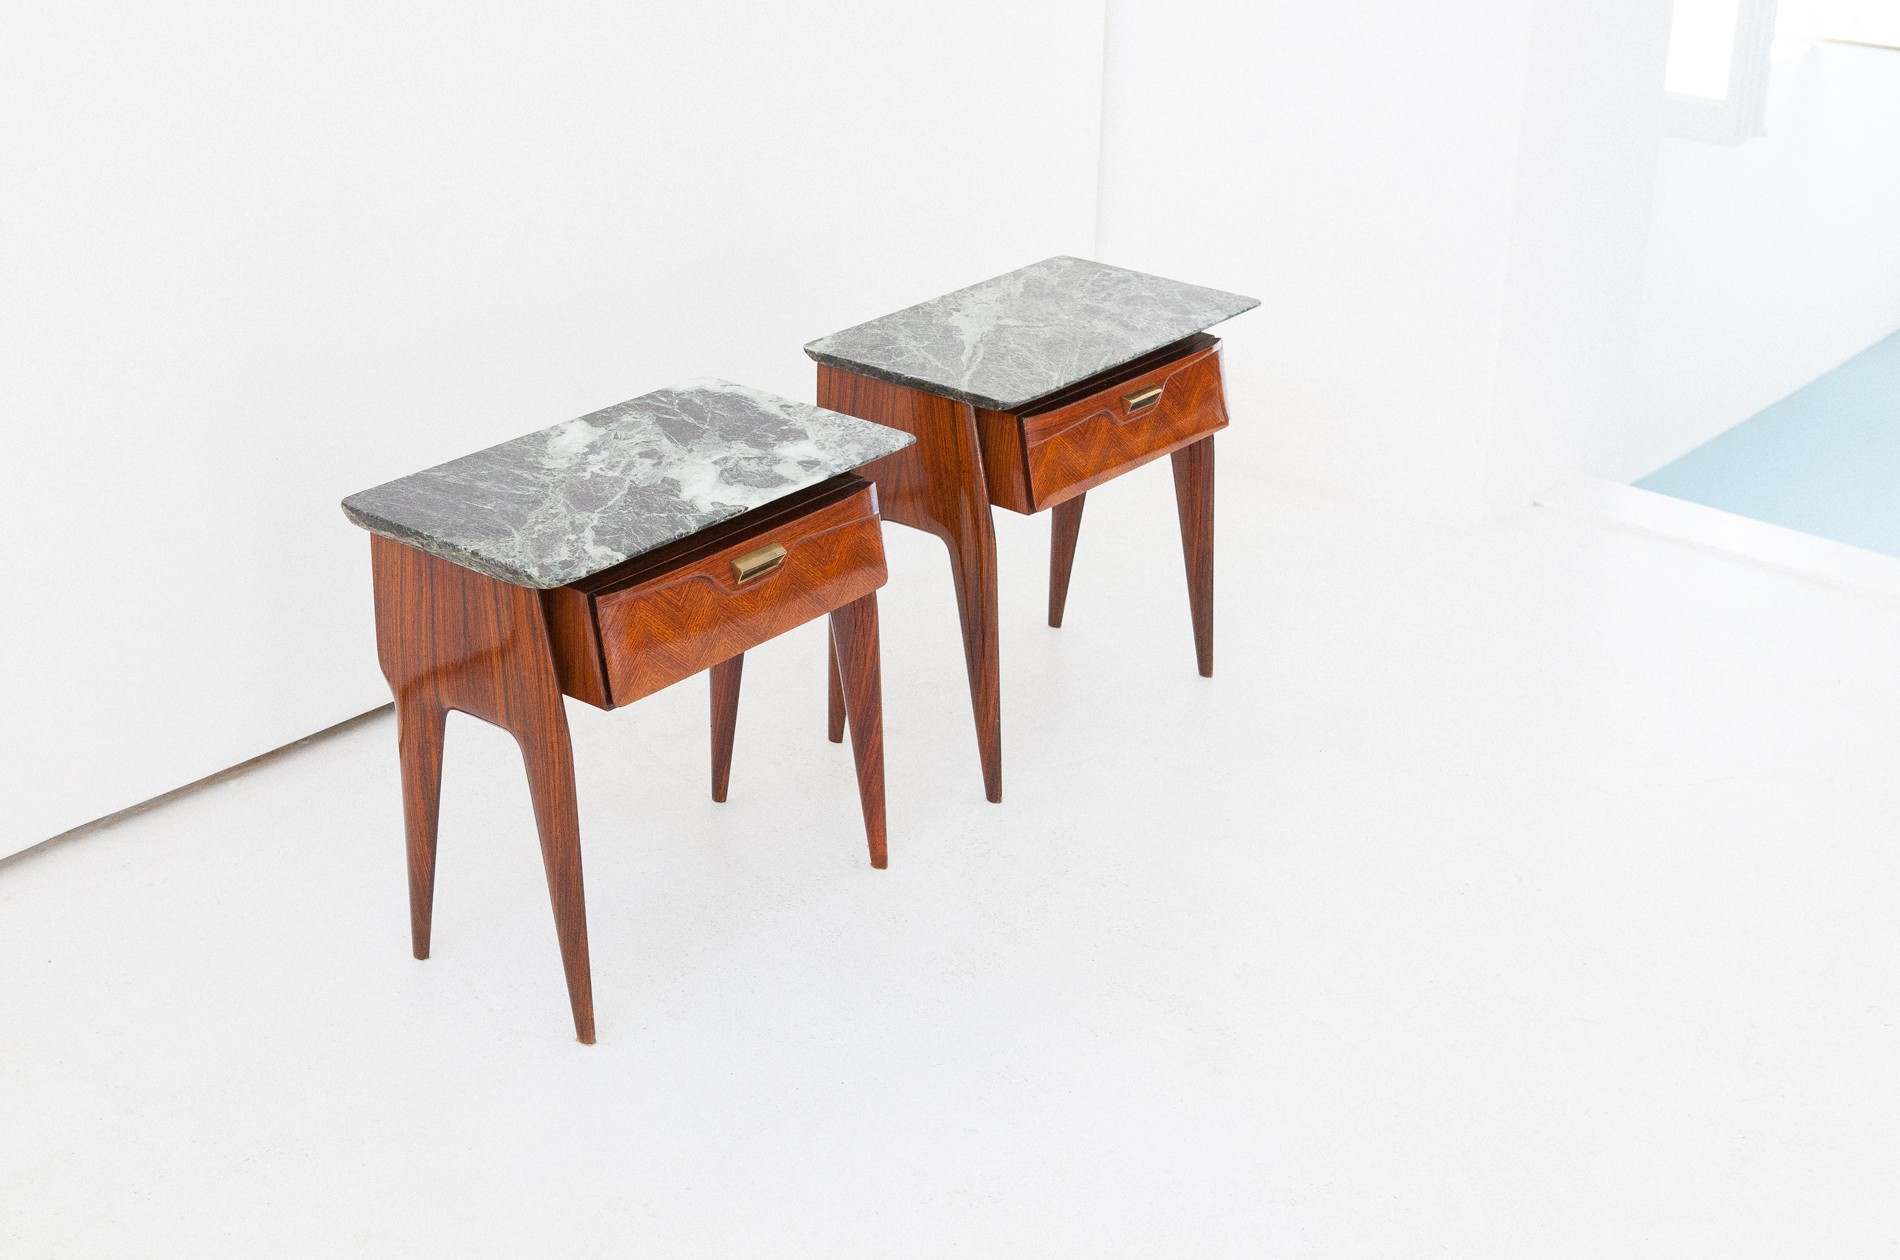 Vintage Italian Mid Century Modern Marble Brass Wood Bedside Tables Nightstands 1950s Previous Next